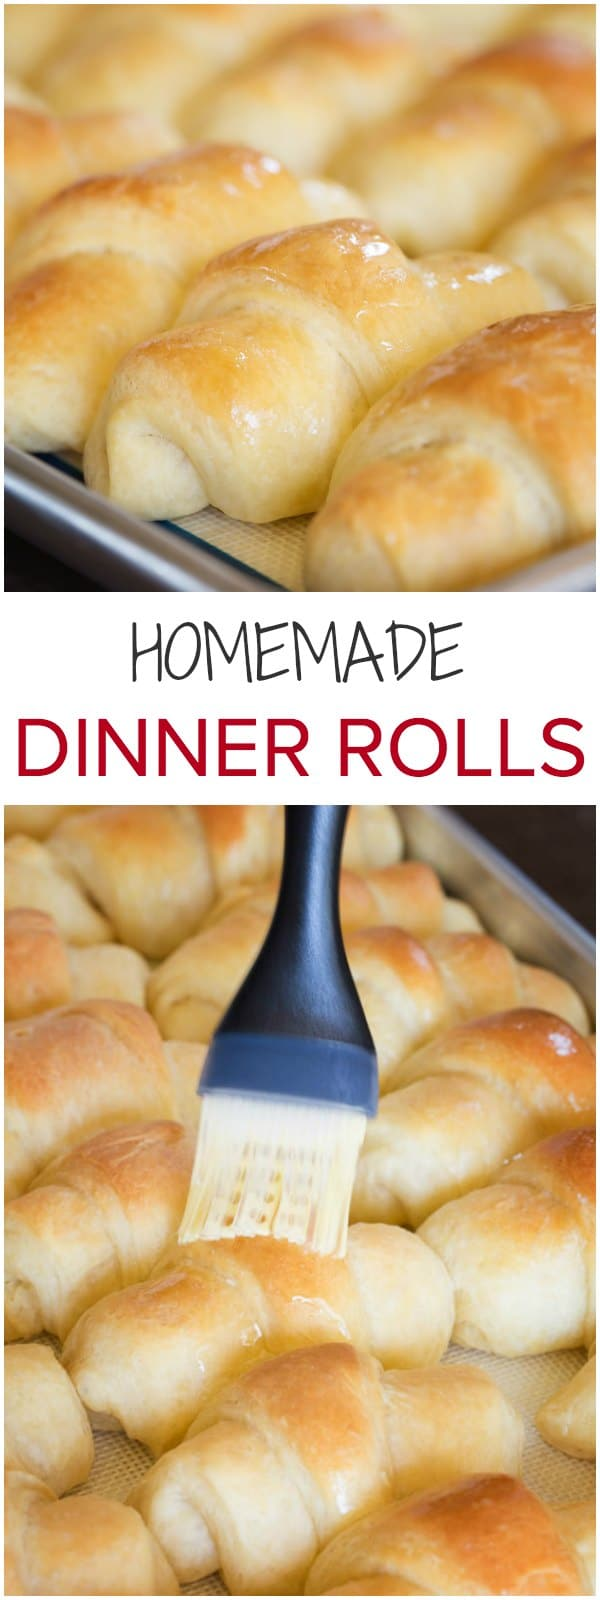 These rich and buttery homemade dinner rolls with soft and tender crumbs will fill your house with unbelievably delicious aroma, an extra perk for sure.